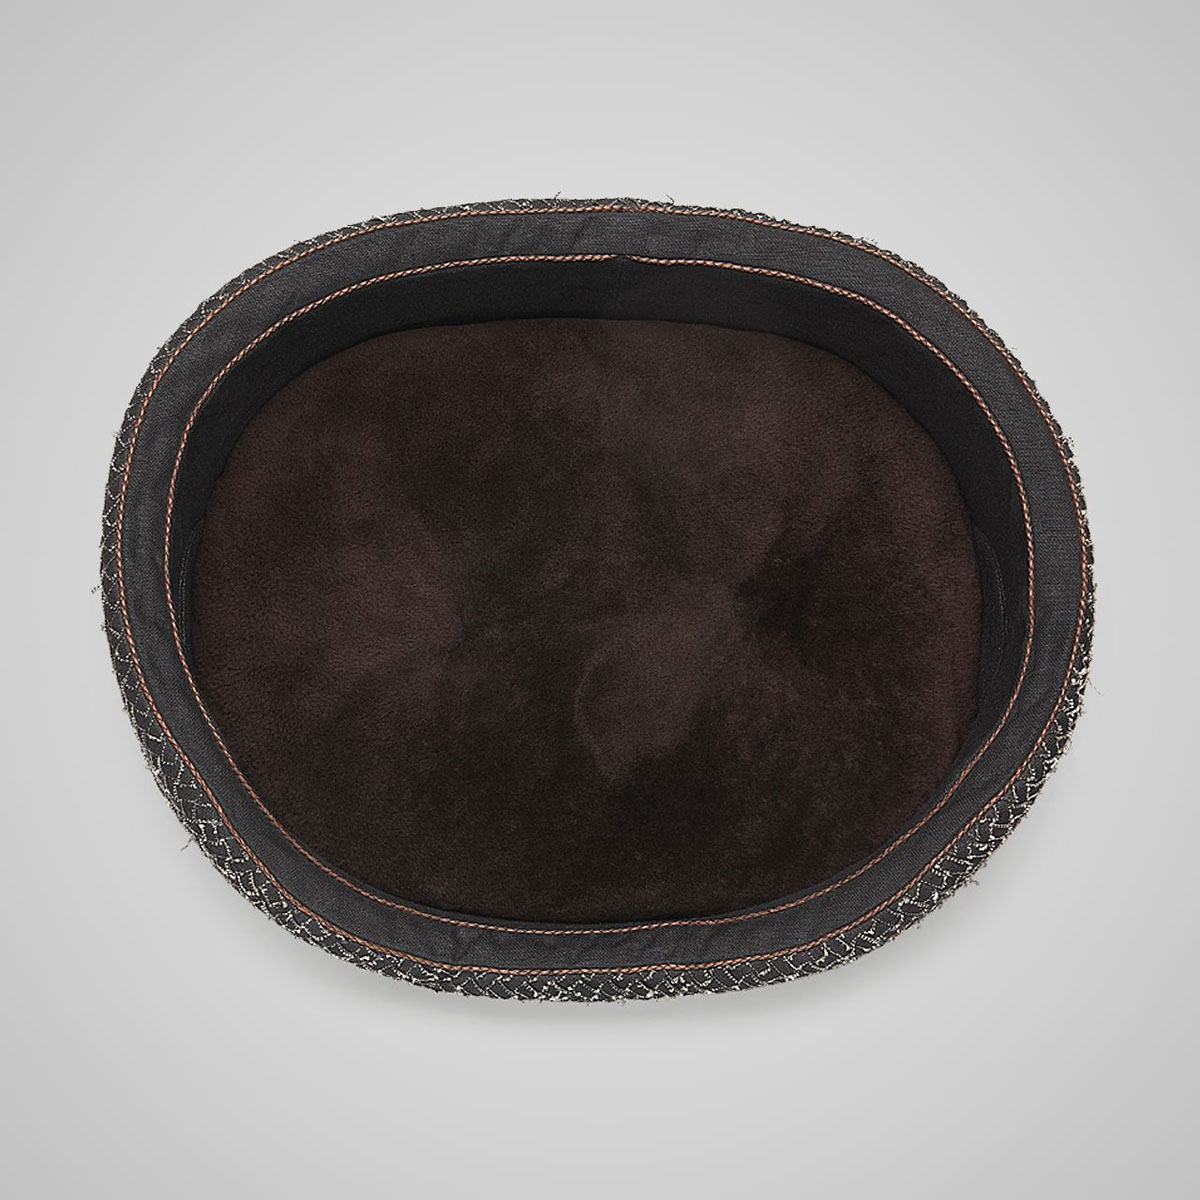 Bottega Veneta Nero Intrecciato Linen Dog Bed